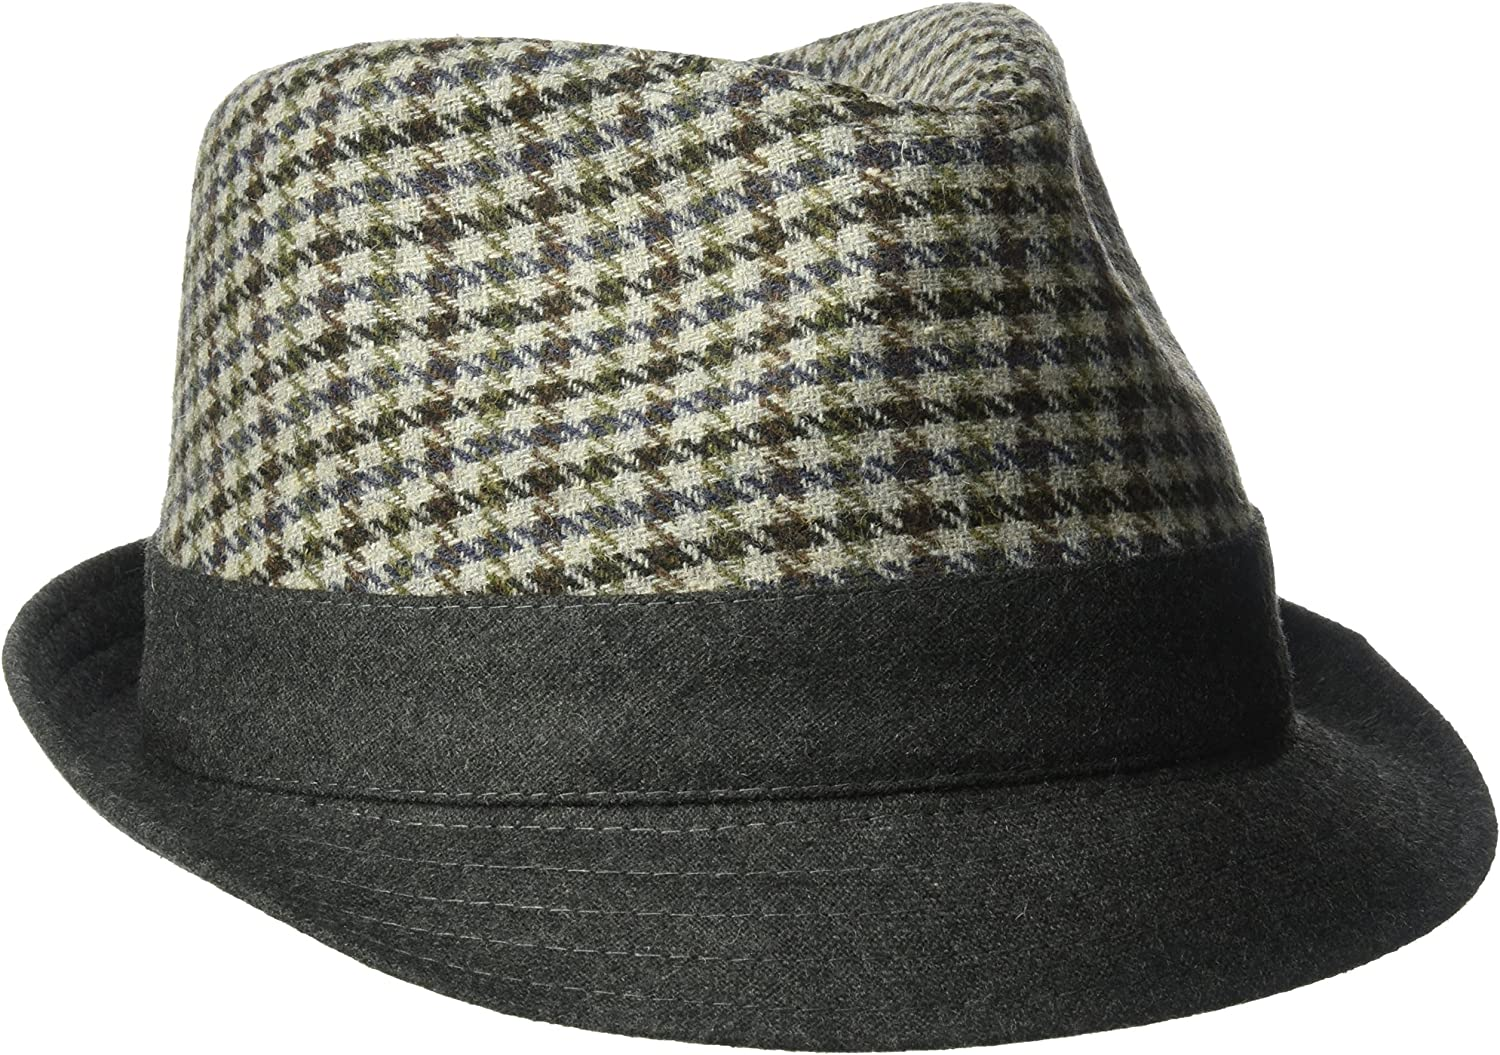 Henschel Mens Wool Blend Plaid Fedora with Solid Brim and Band